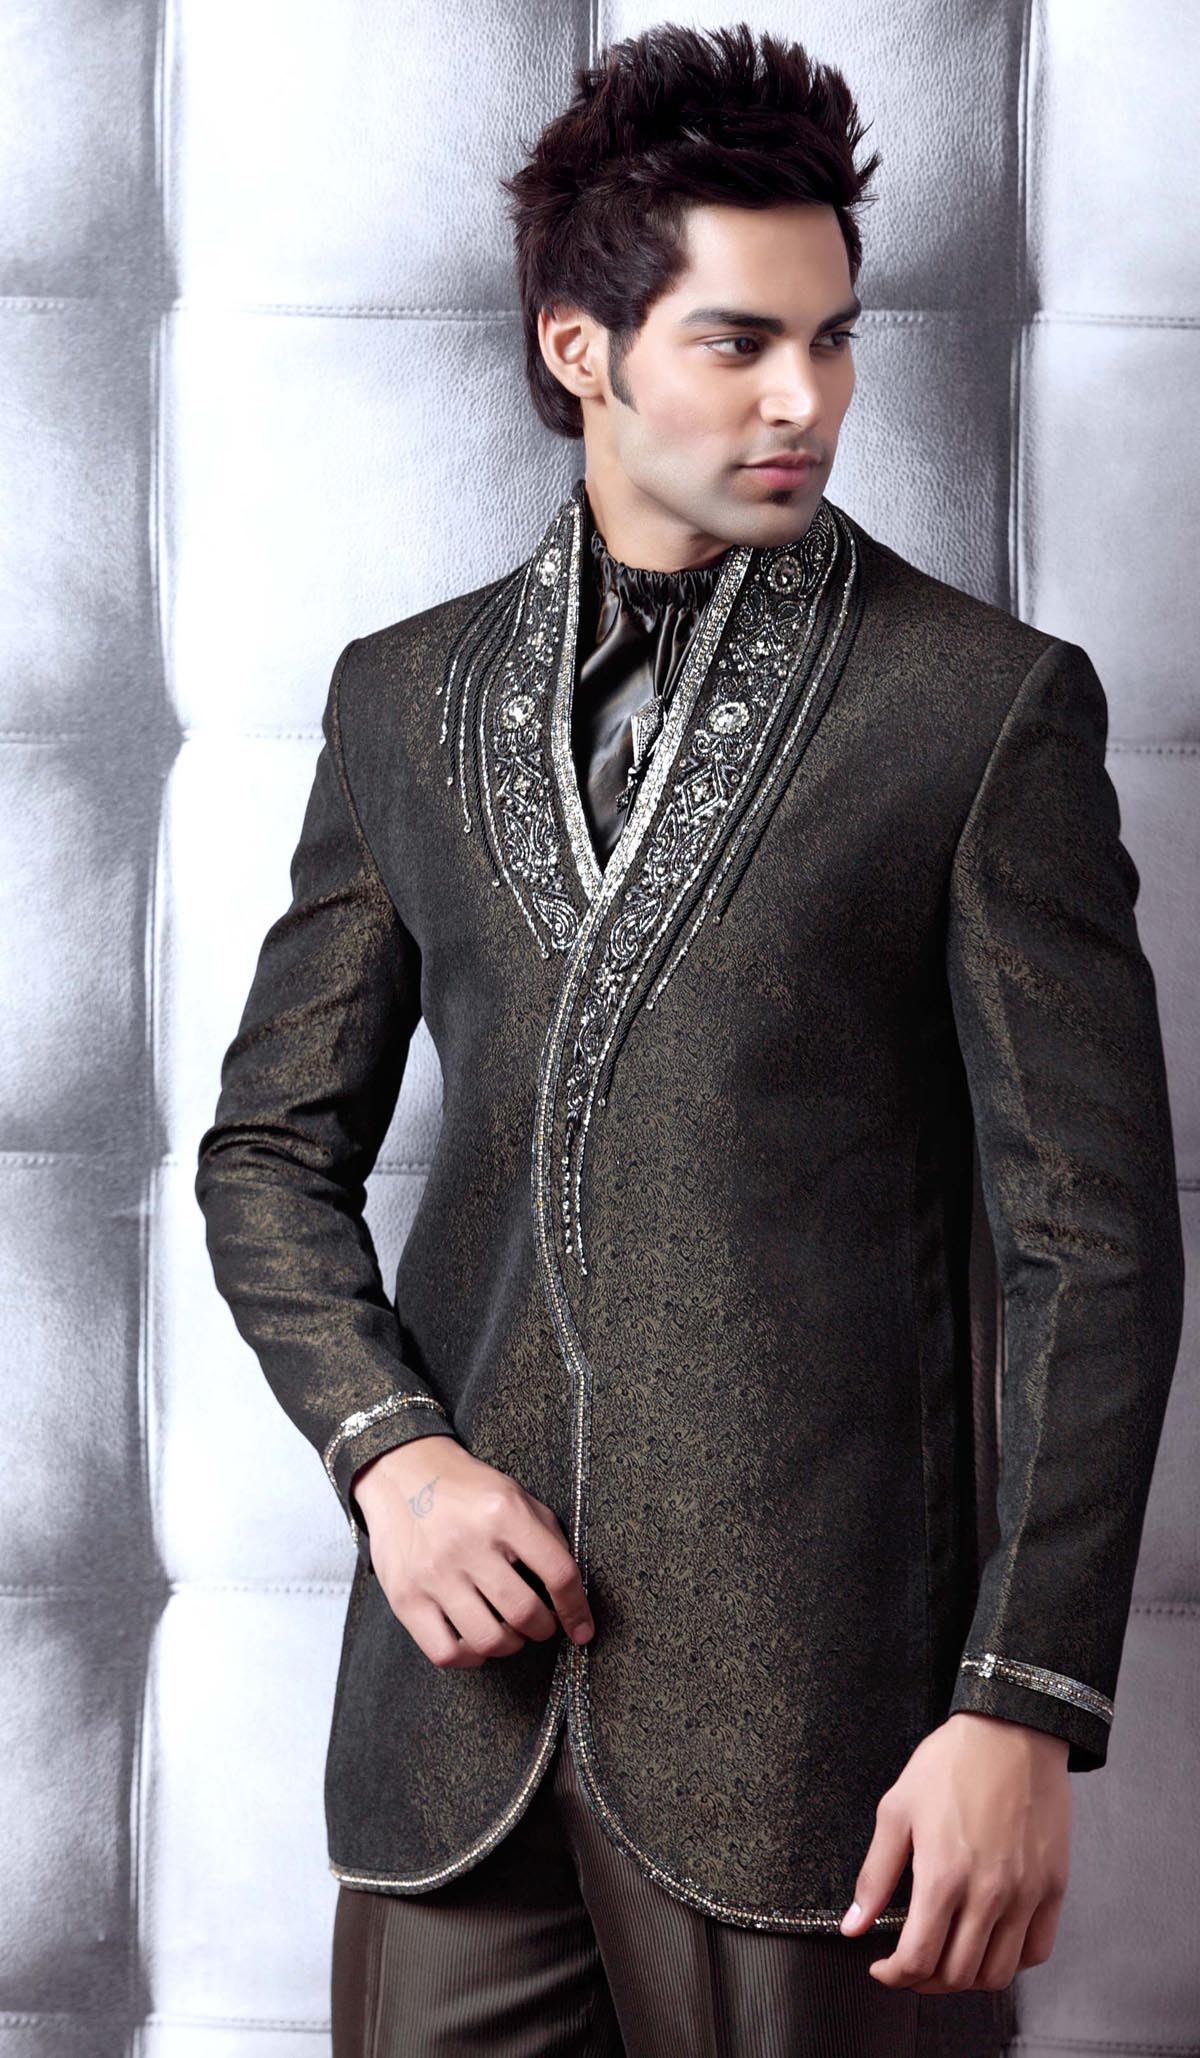 Pin on Suits & Style